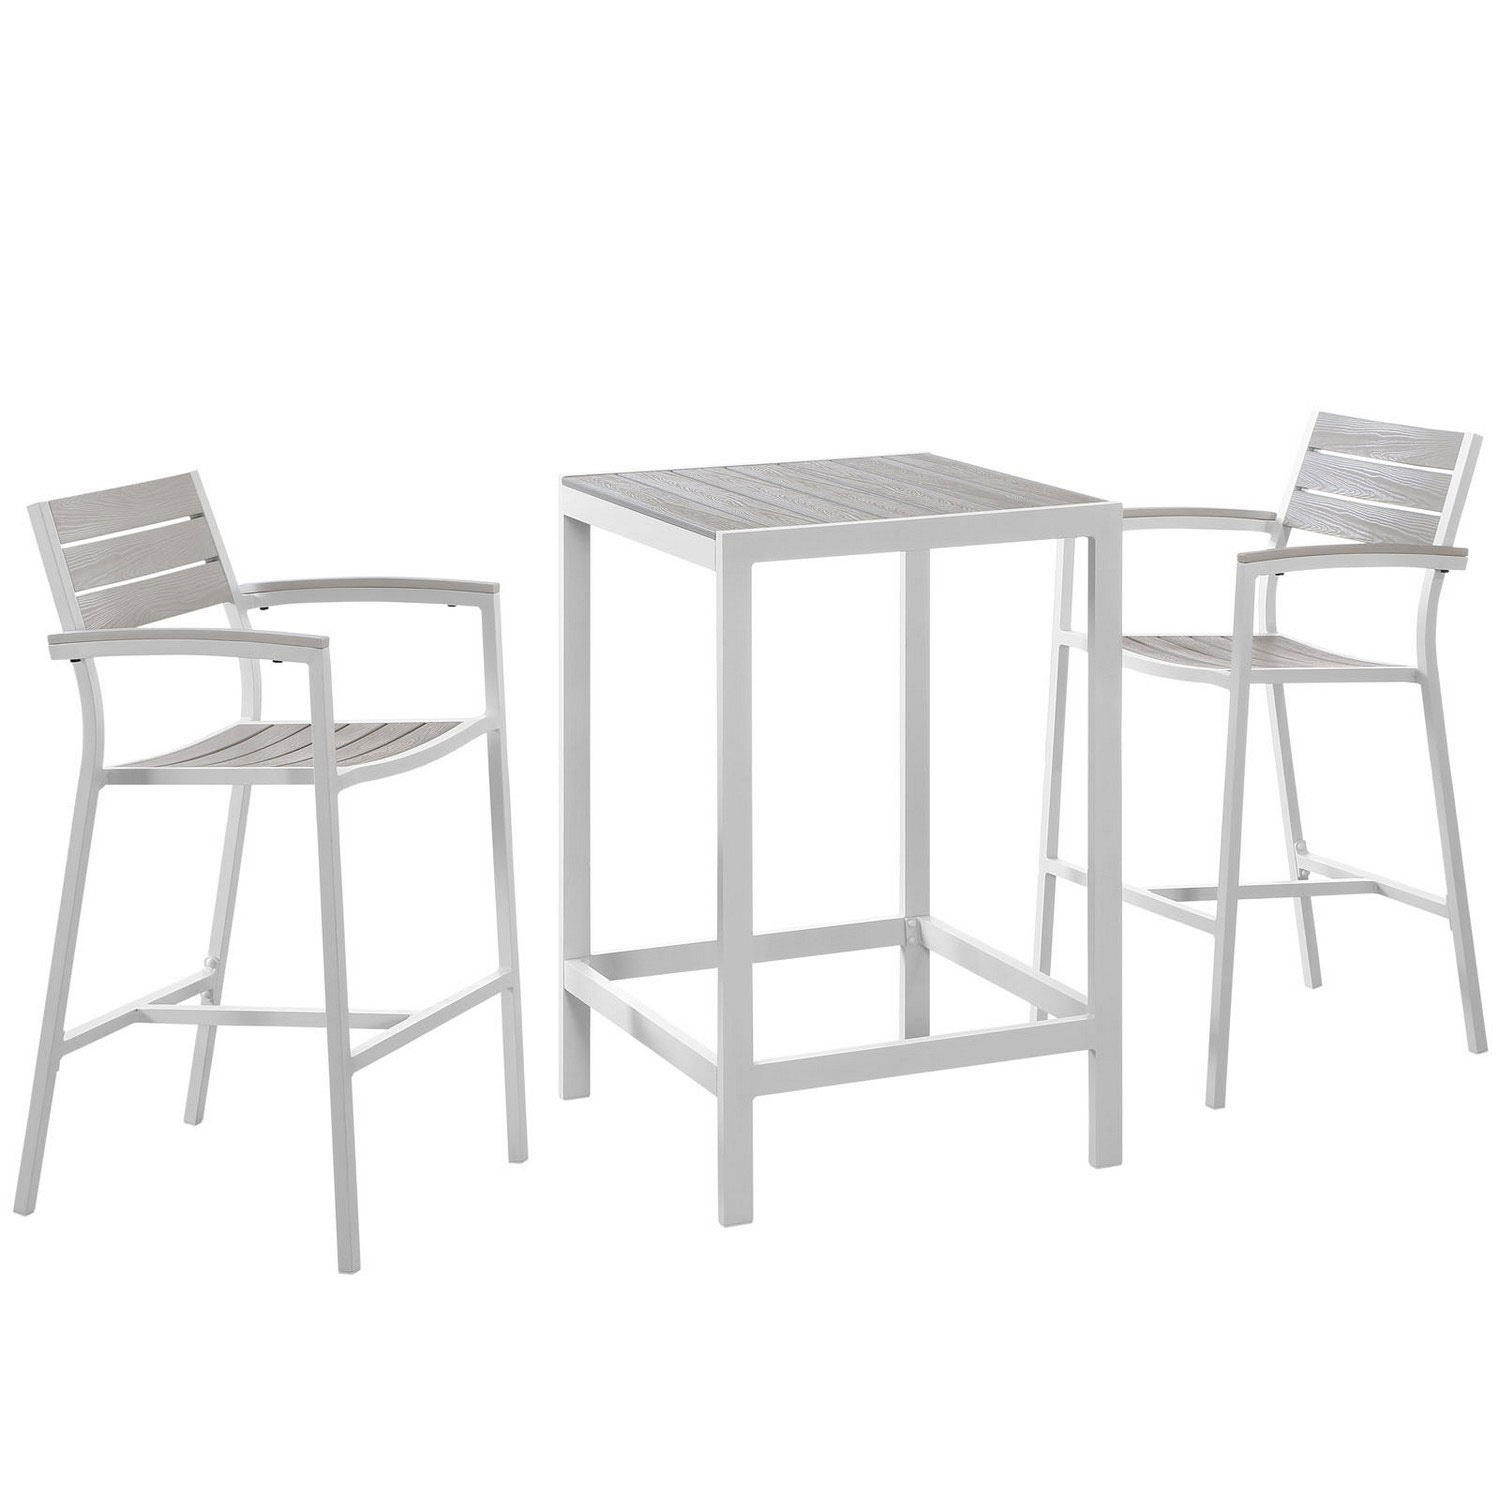 Modway Maine 3 Piece Outdoor Patio Dining Set - White/Light Gray